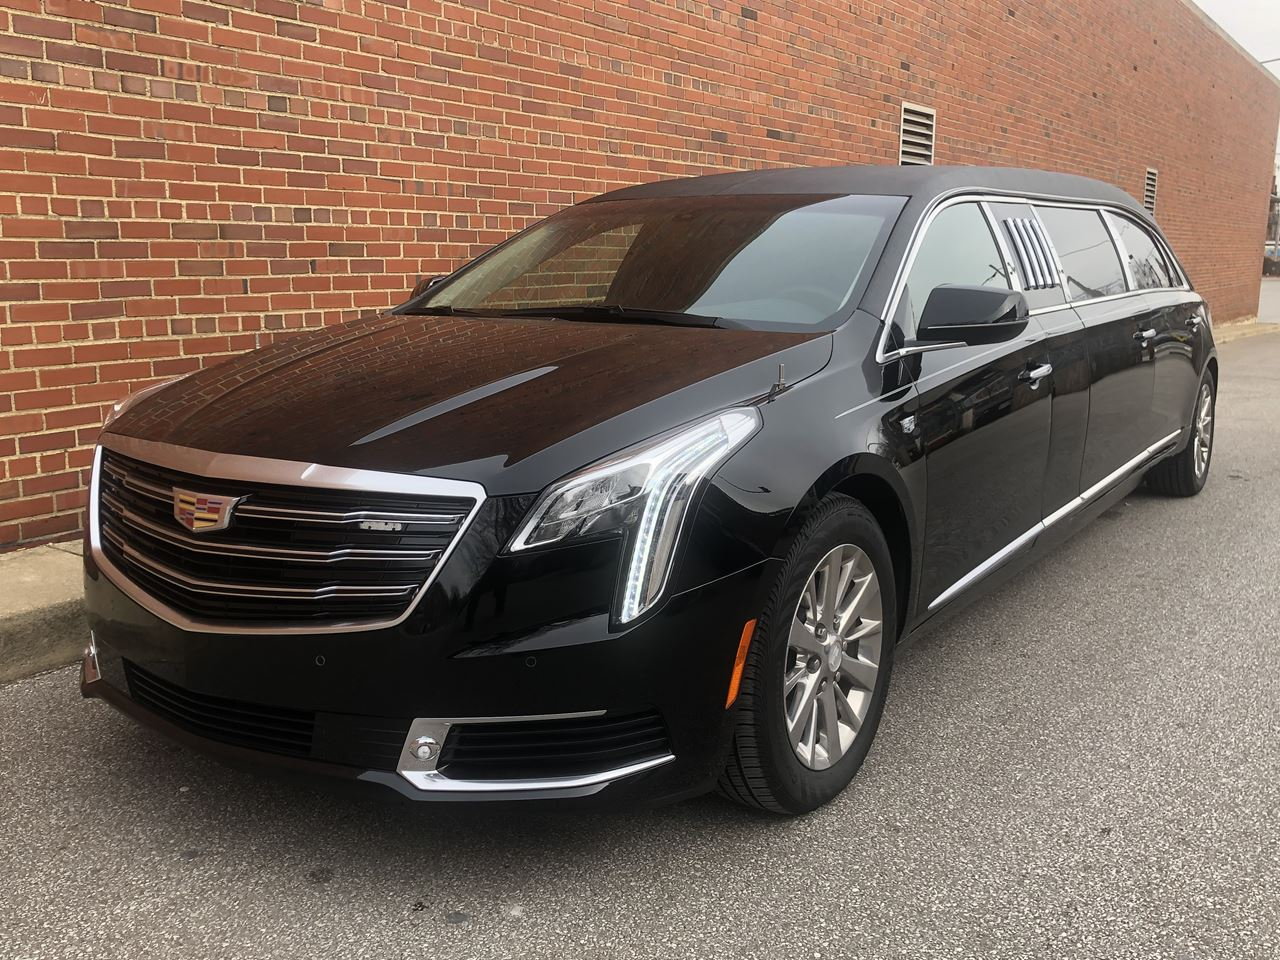 2019 Cadillac SS 70 Stretch Limousine 402 20